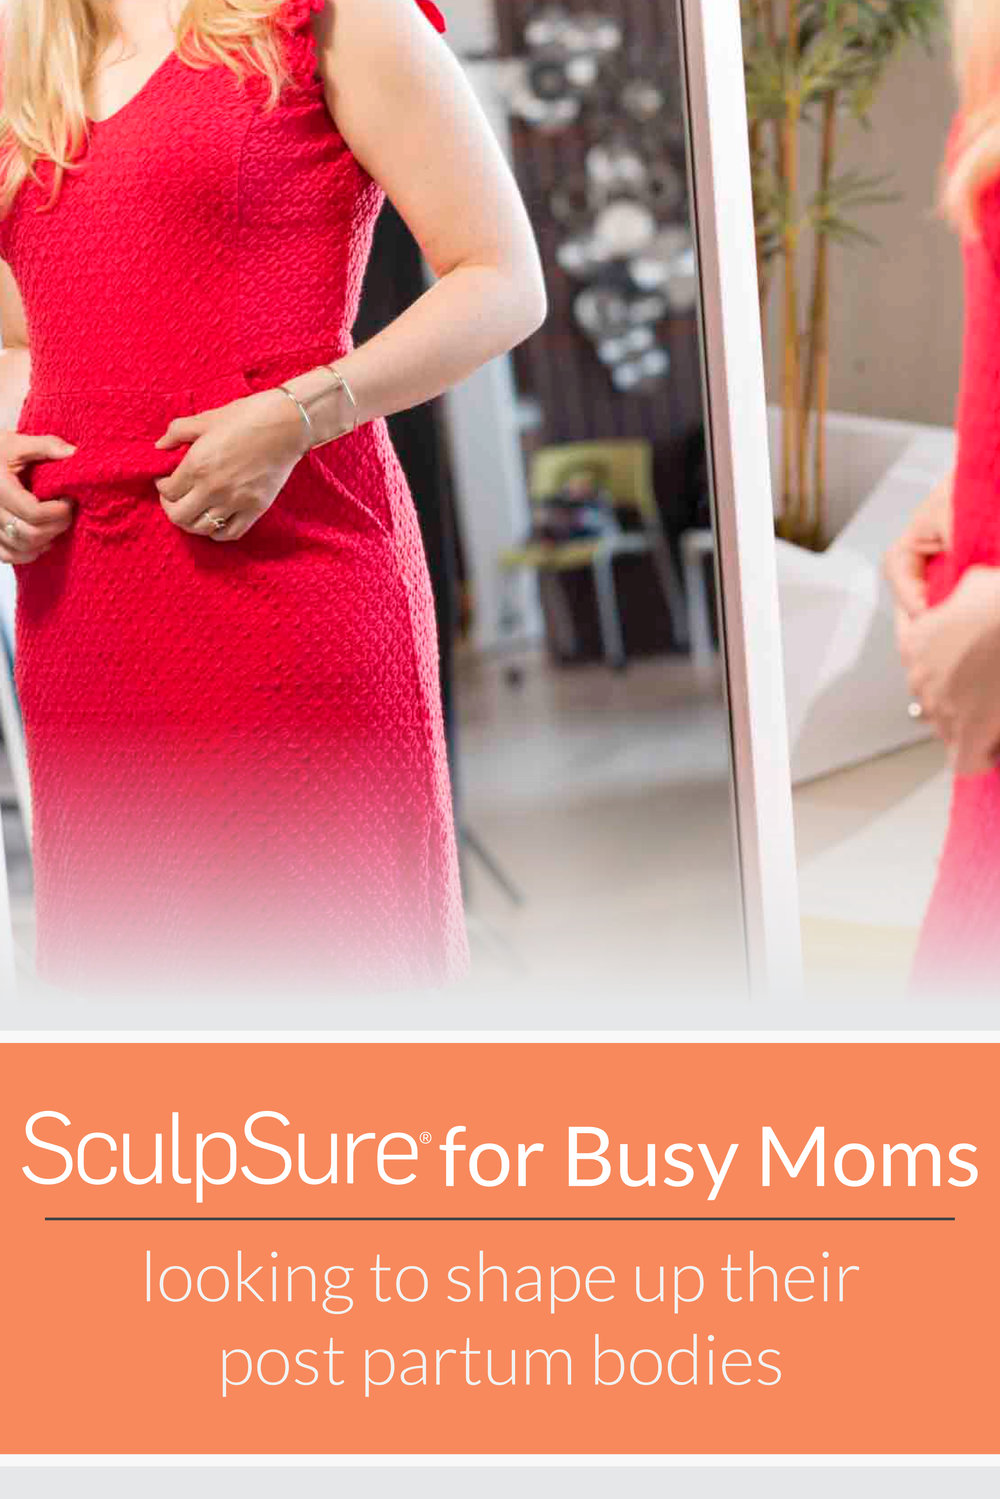 Reduce the post partum fat with SculpSure. Available at Hill Country Vitality in San Antonio.